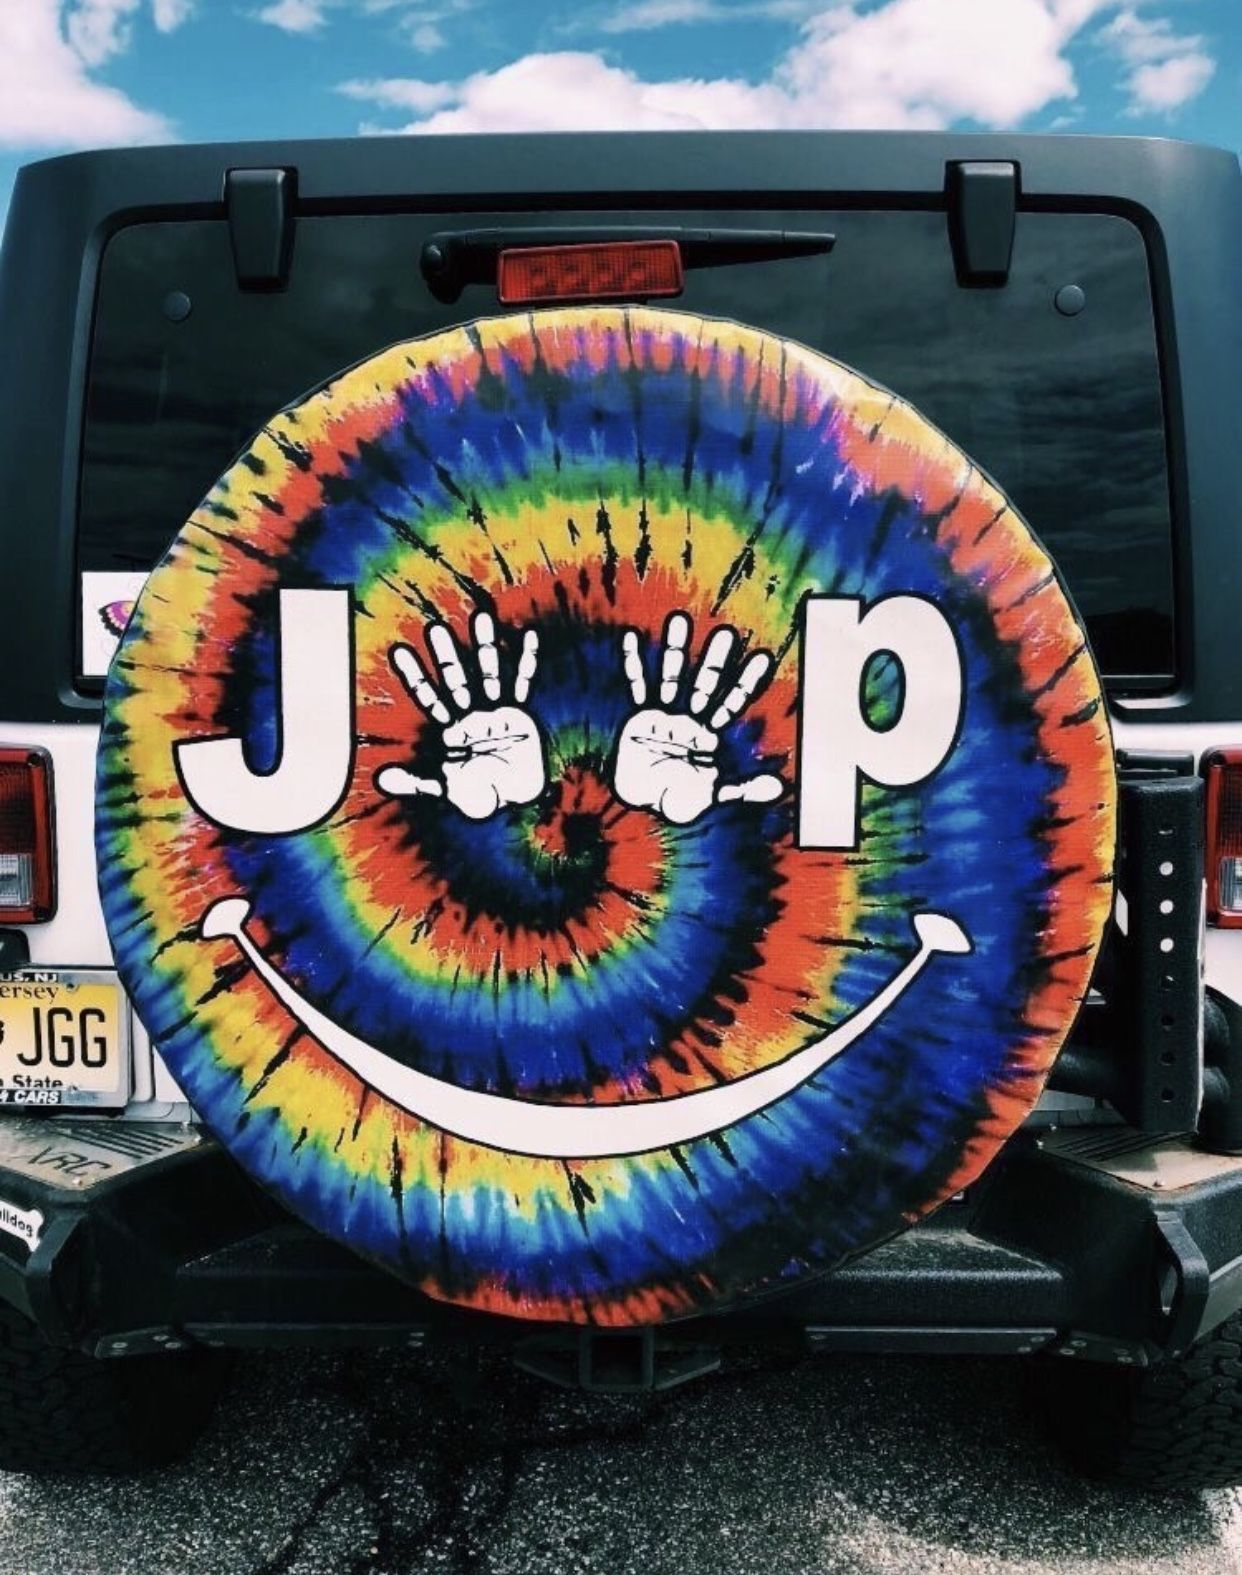 𝕡𝕚𝕟𝕥𝕖𝕣𝕖𝕤𝕥 𝕒𝕧𝕖𝕤𝕓𝕒𝕓𝕖 Jeep Tire Cover Cute